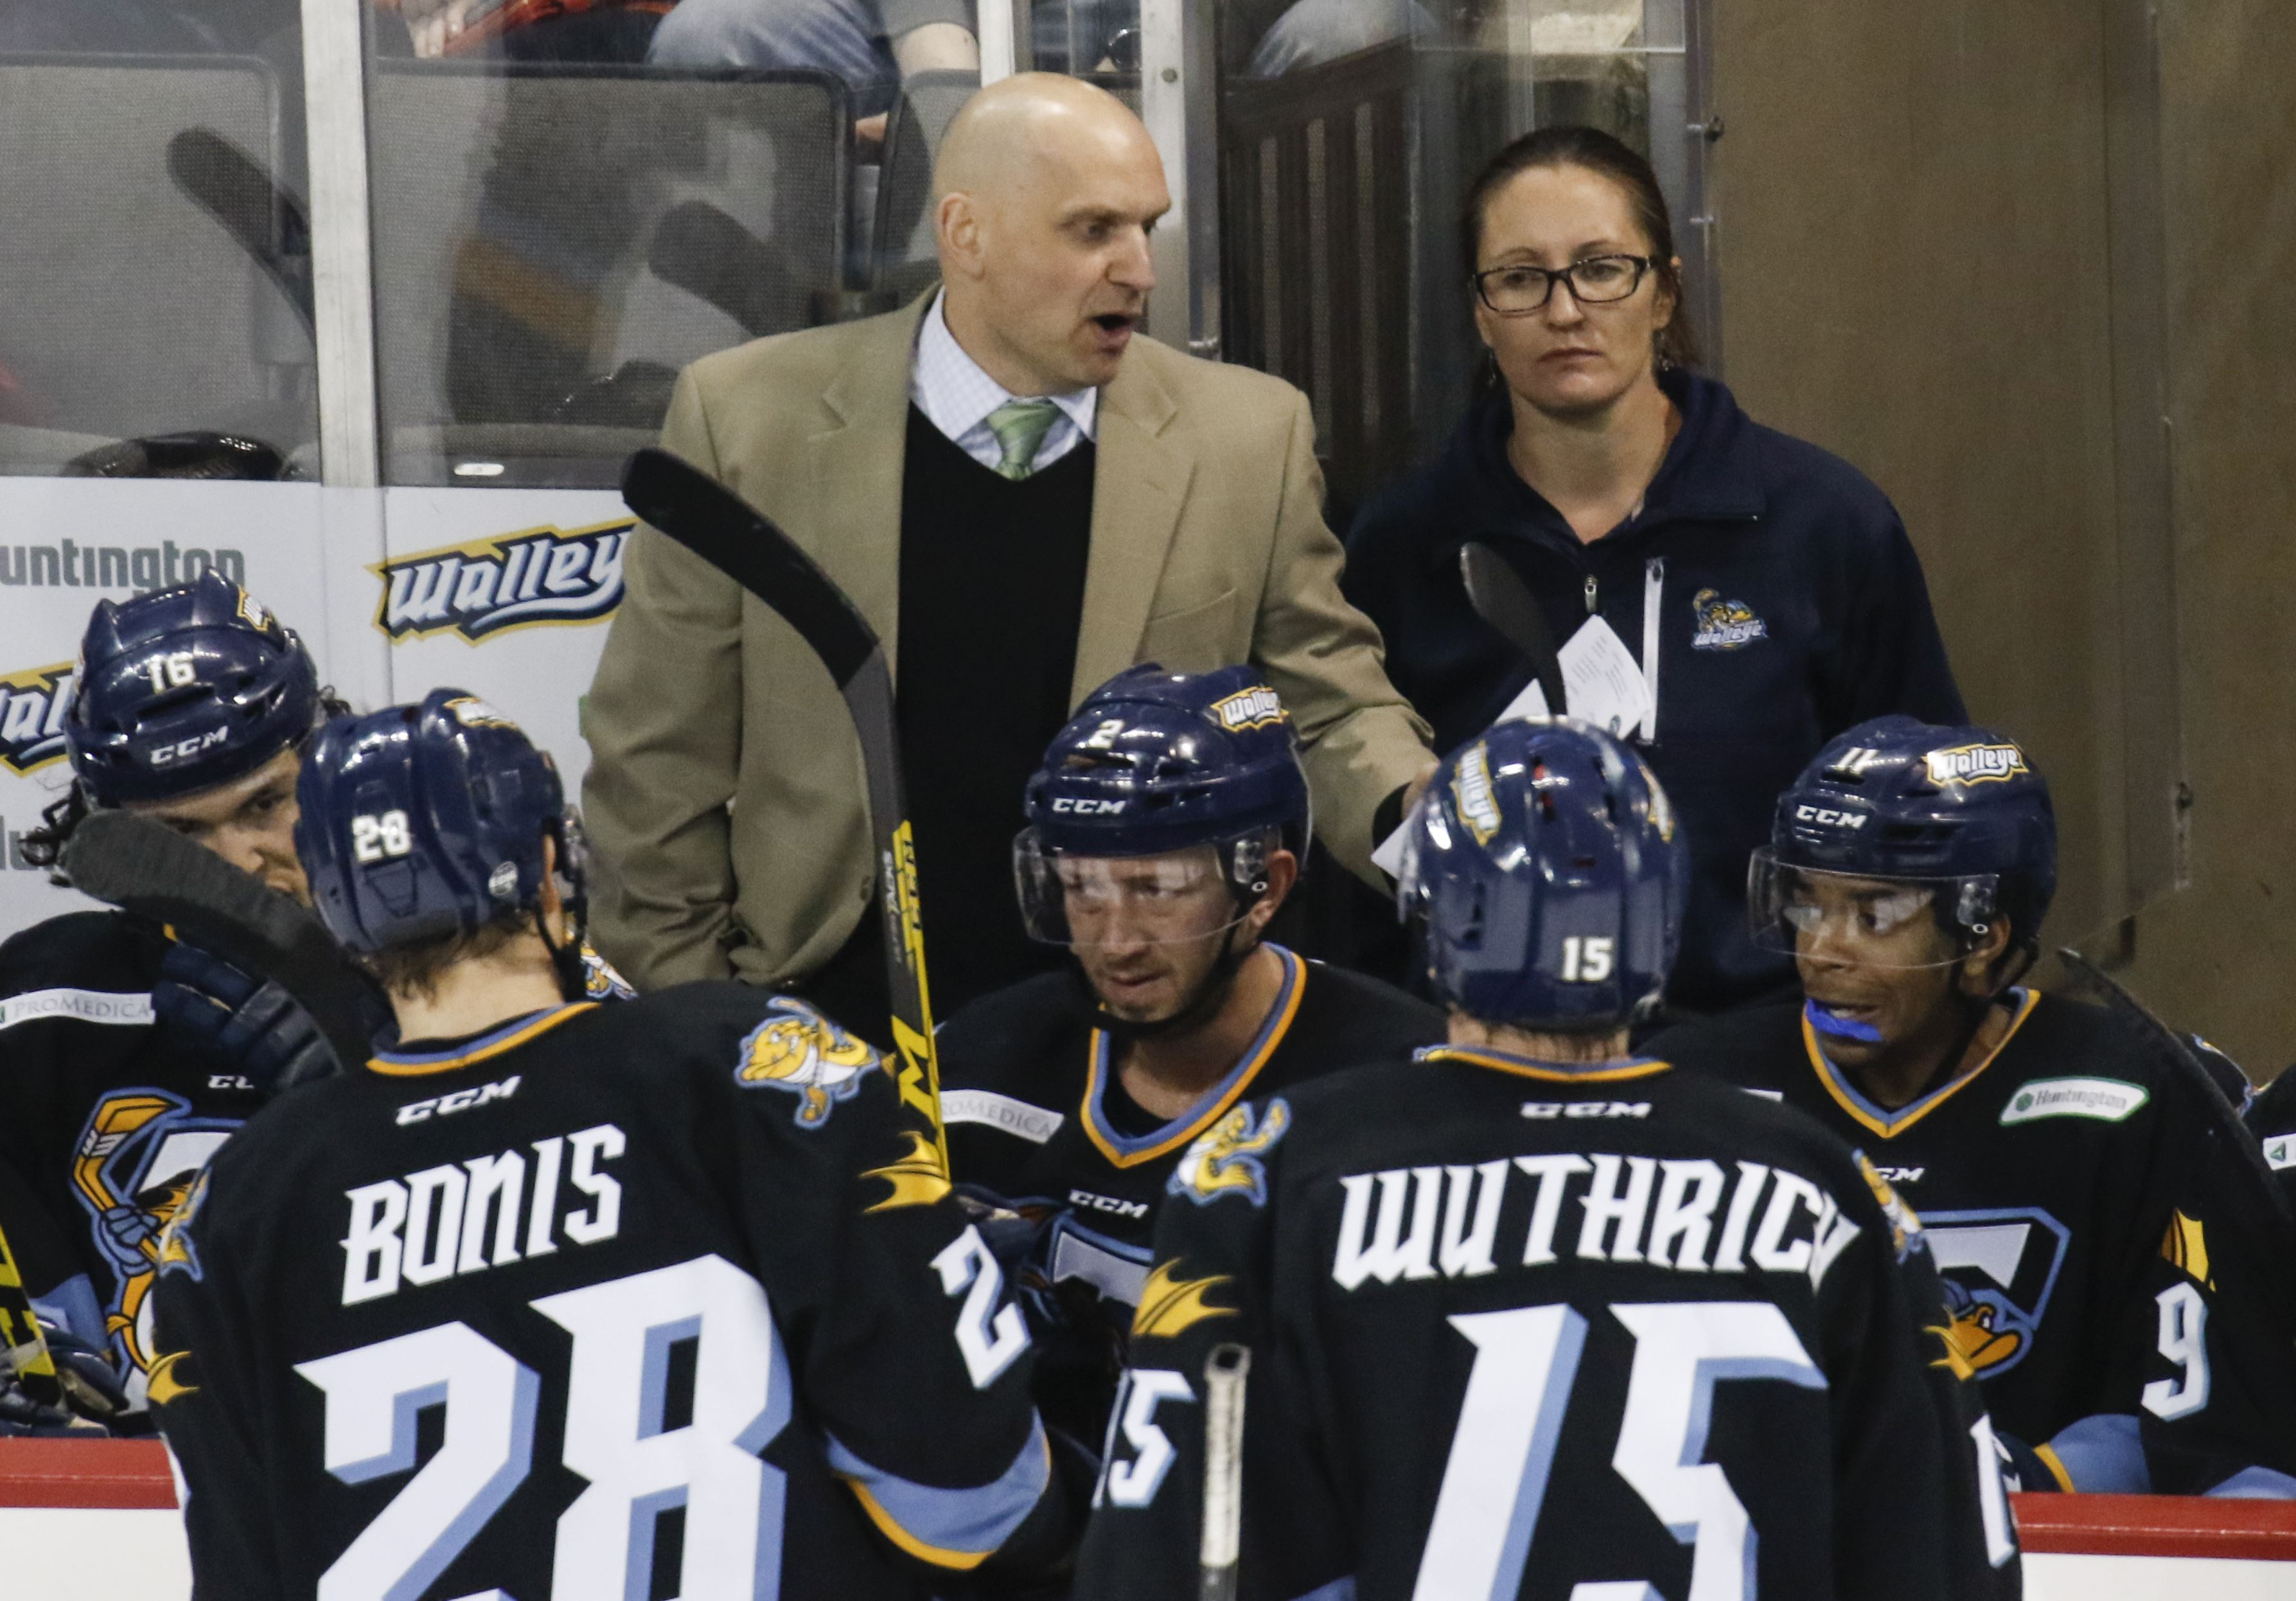 ECHL: Rosters In Playoffs Are Heavily Altered